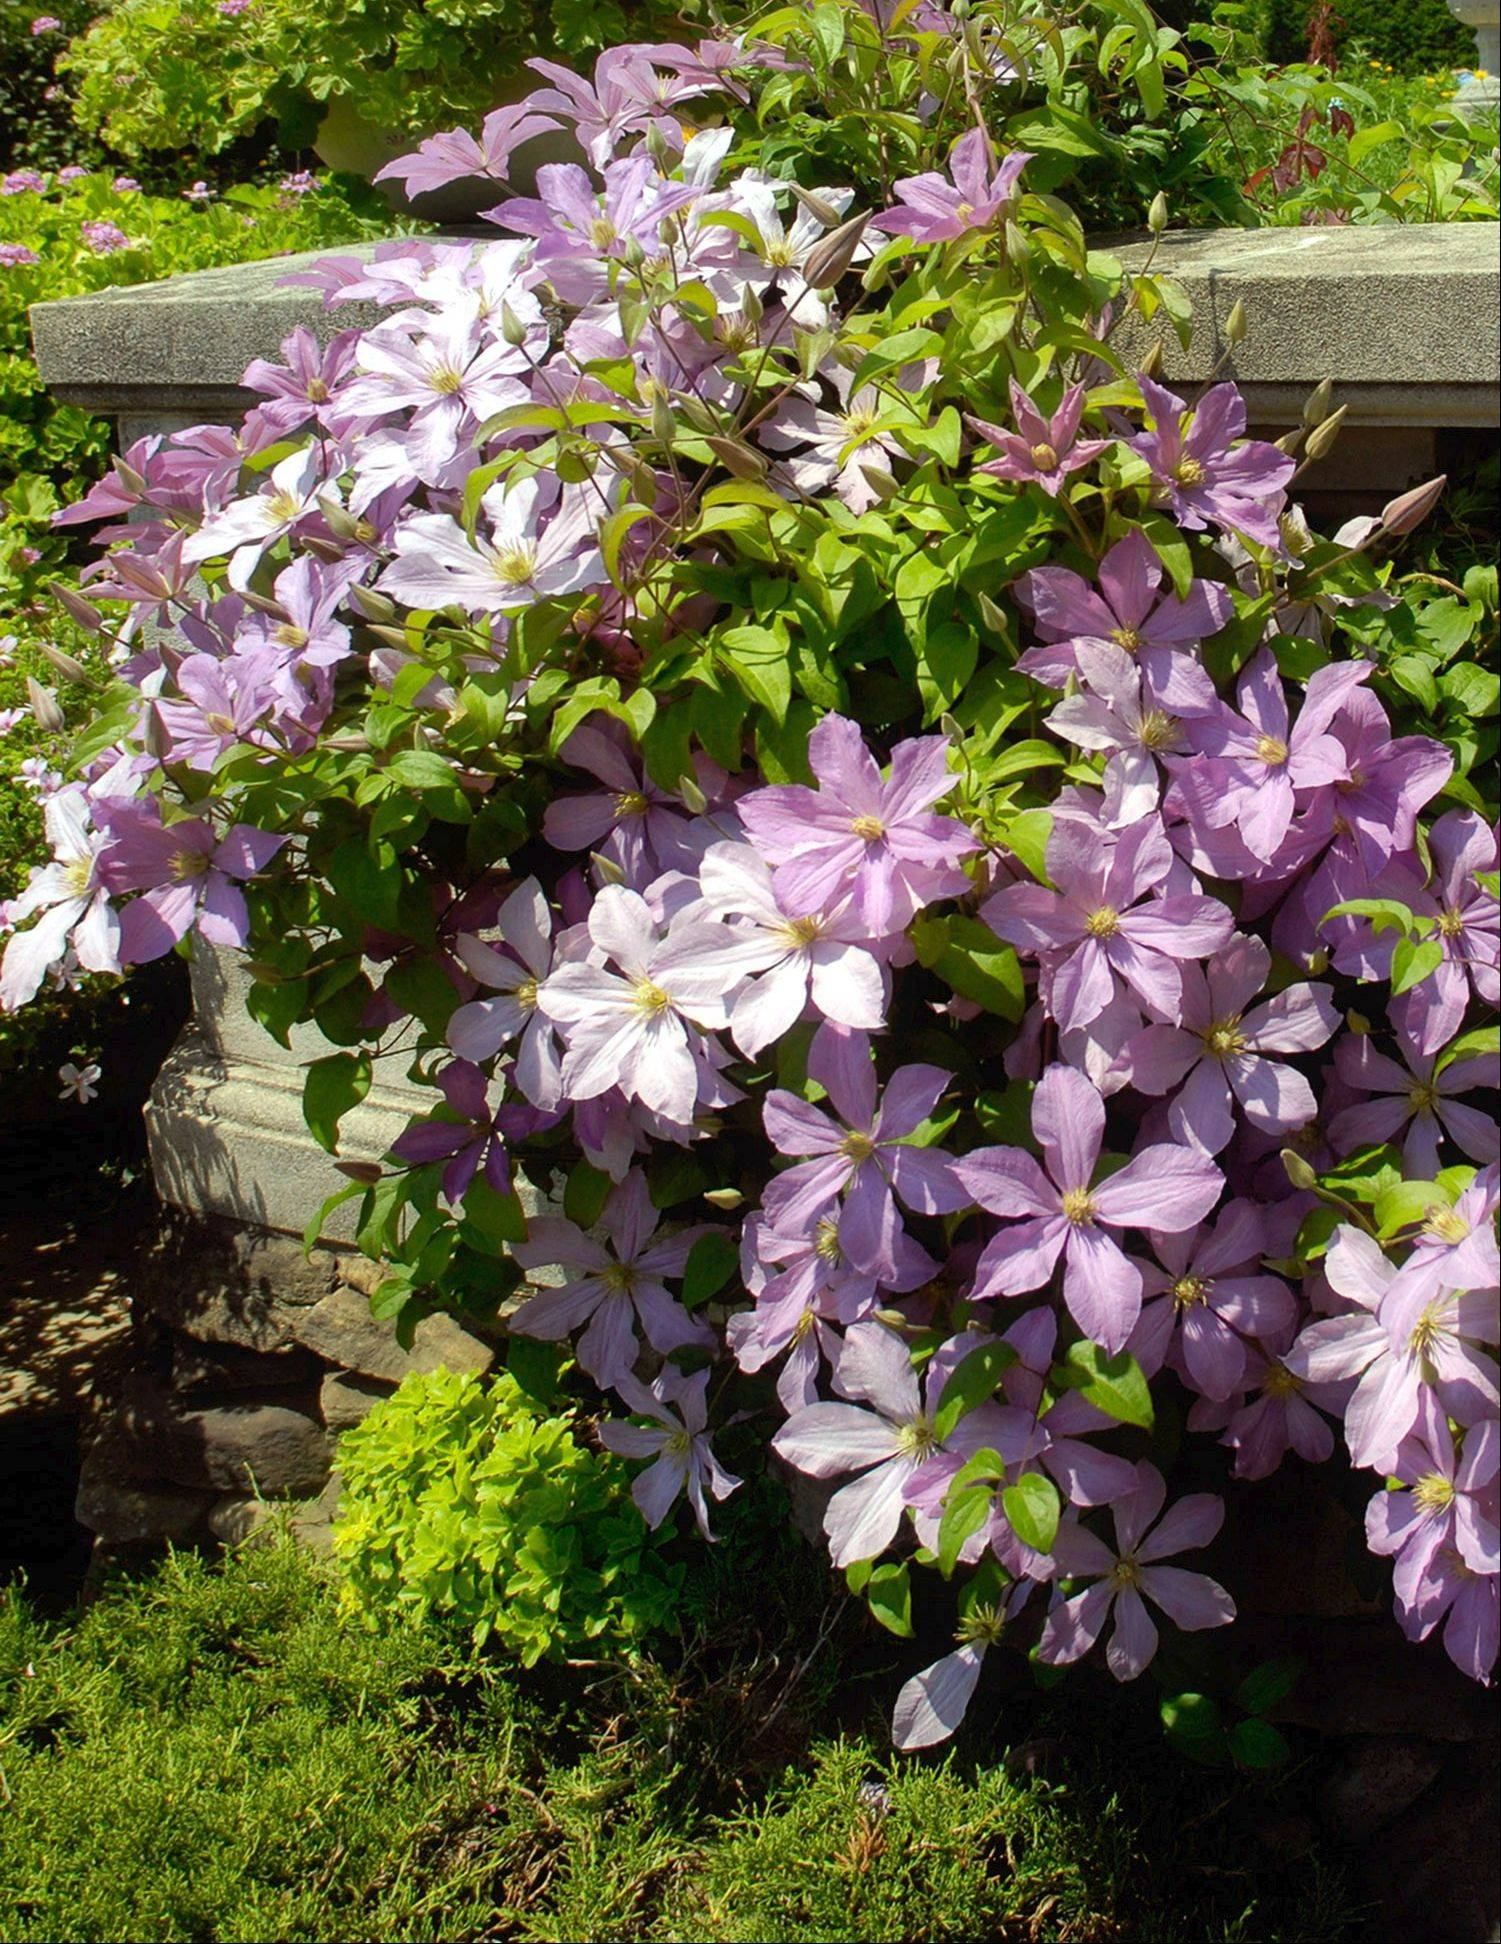 The clematis vine should be monitored to ensure it trains properly on its supports.